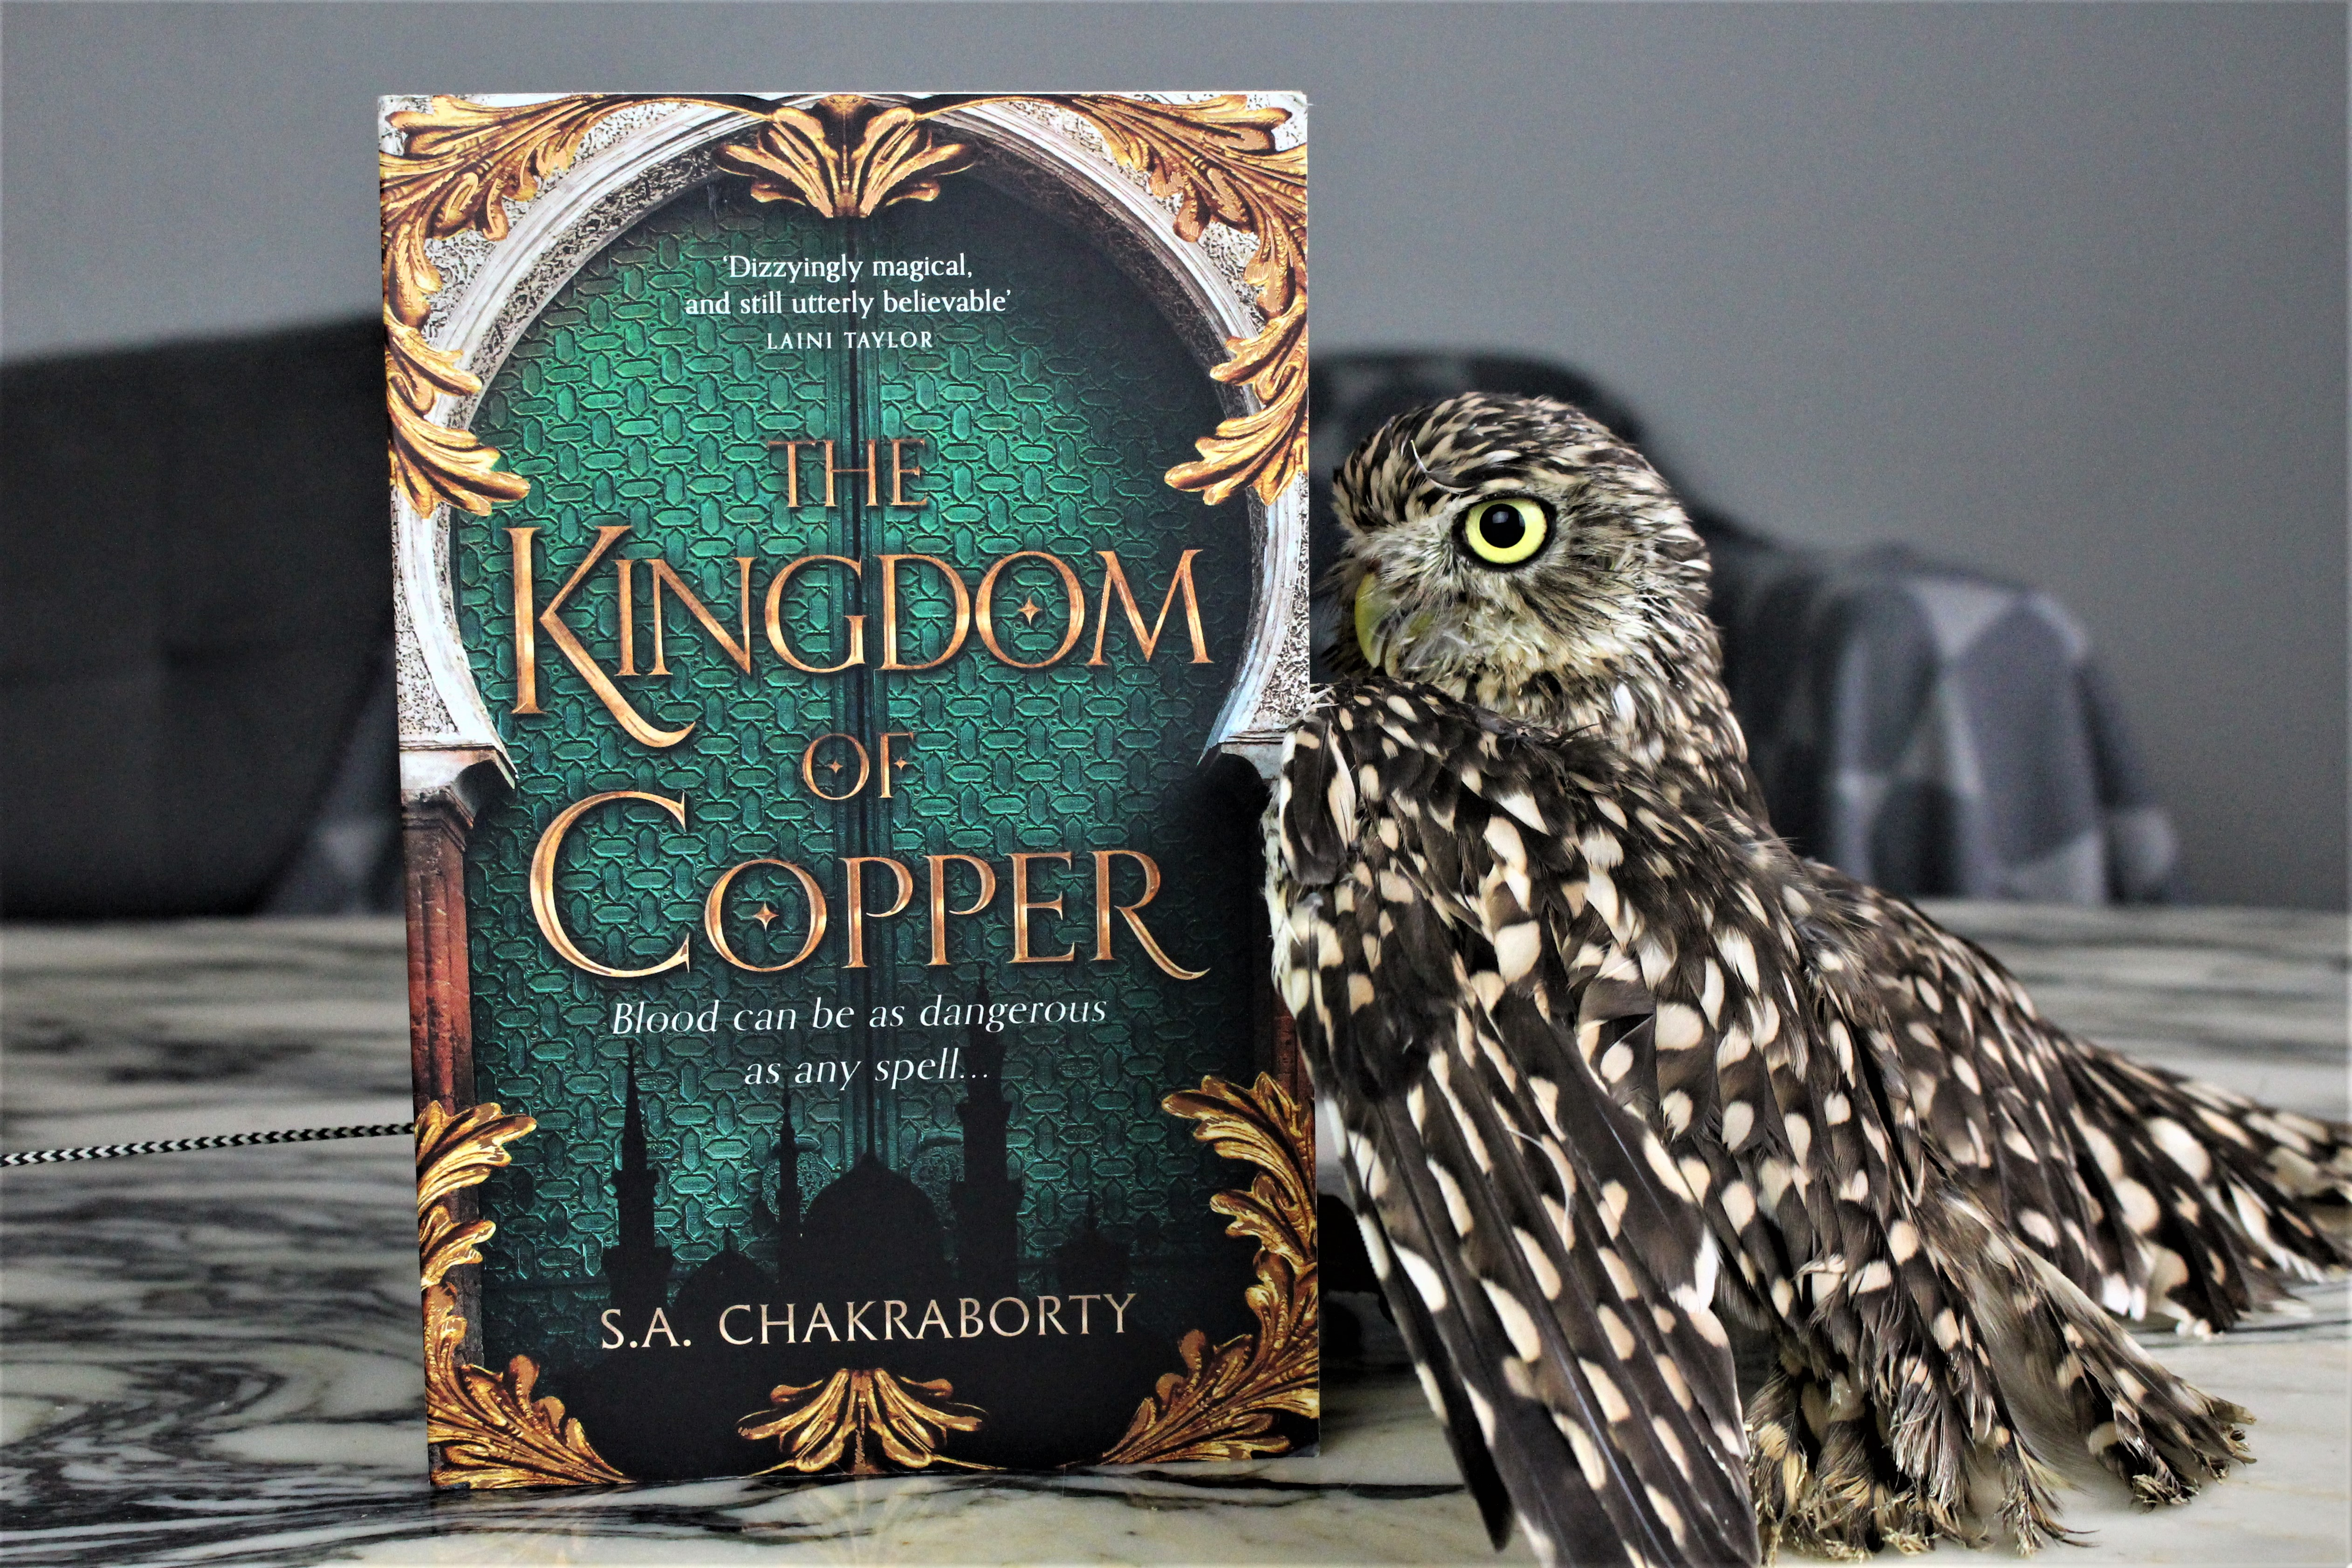 The Kingdom of Copper by S.A. Chakraborty